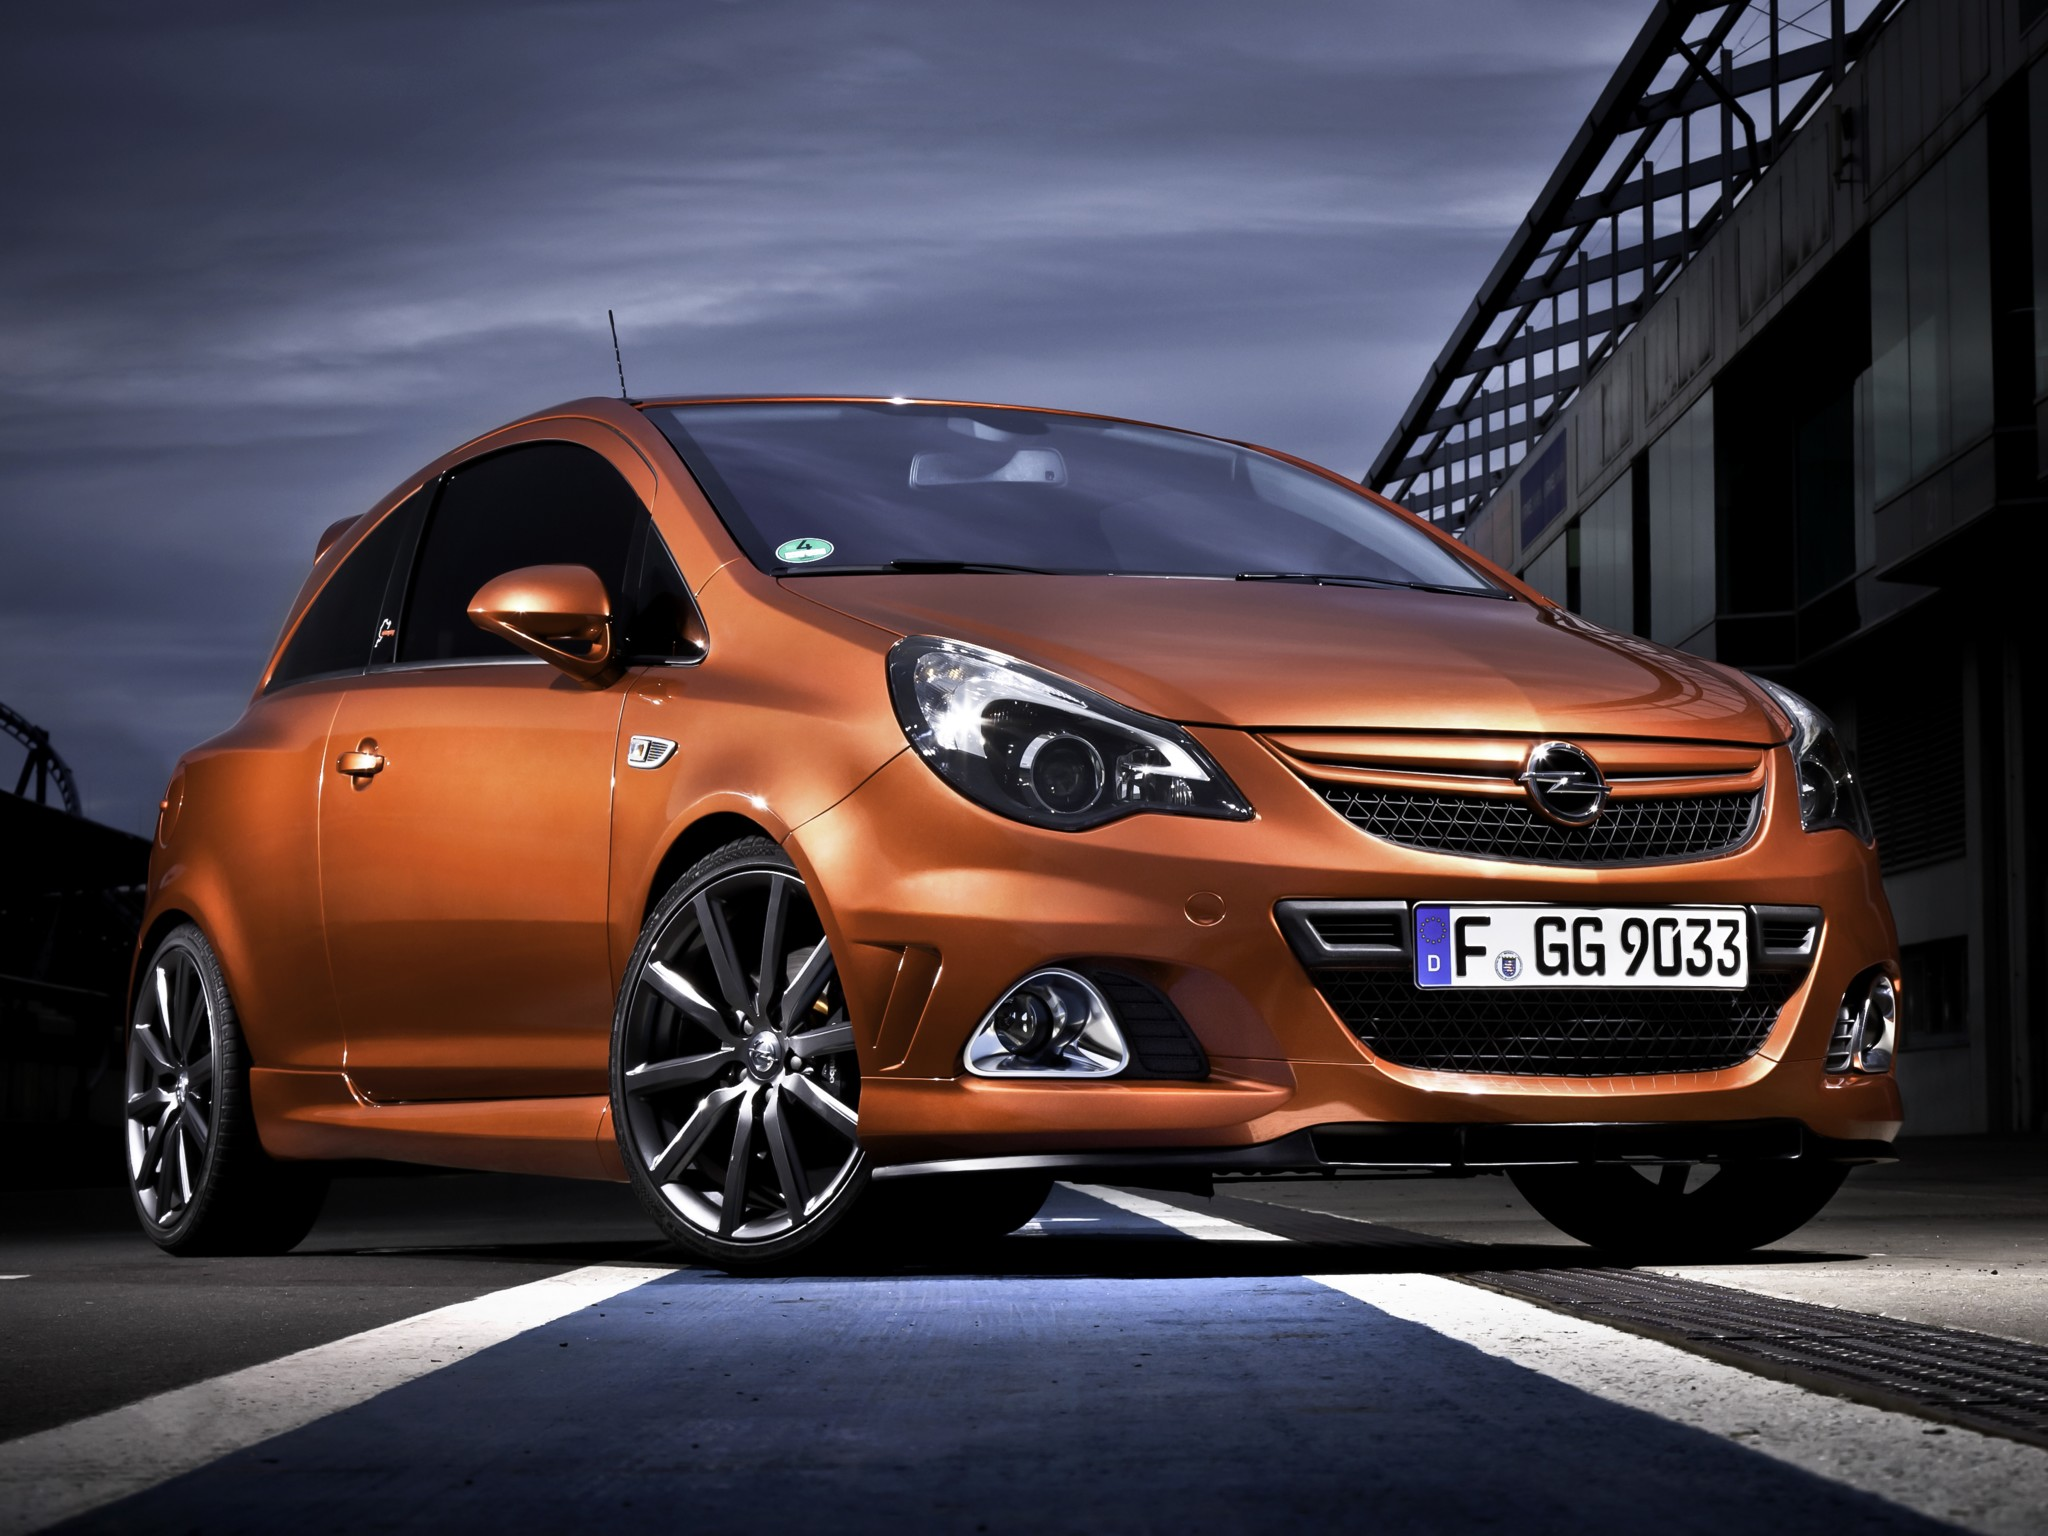 Opel Corsa Opc Specs Photos 2007 2008 2009 2010 2011 2012 2013 2014 2015 Autoevolution